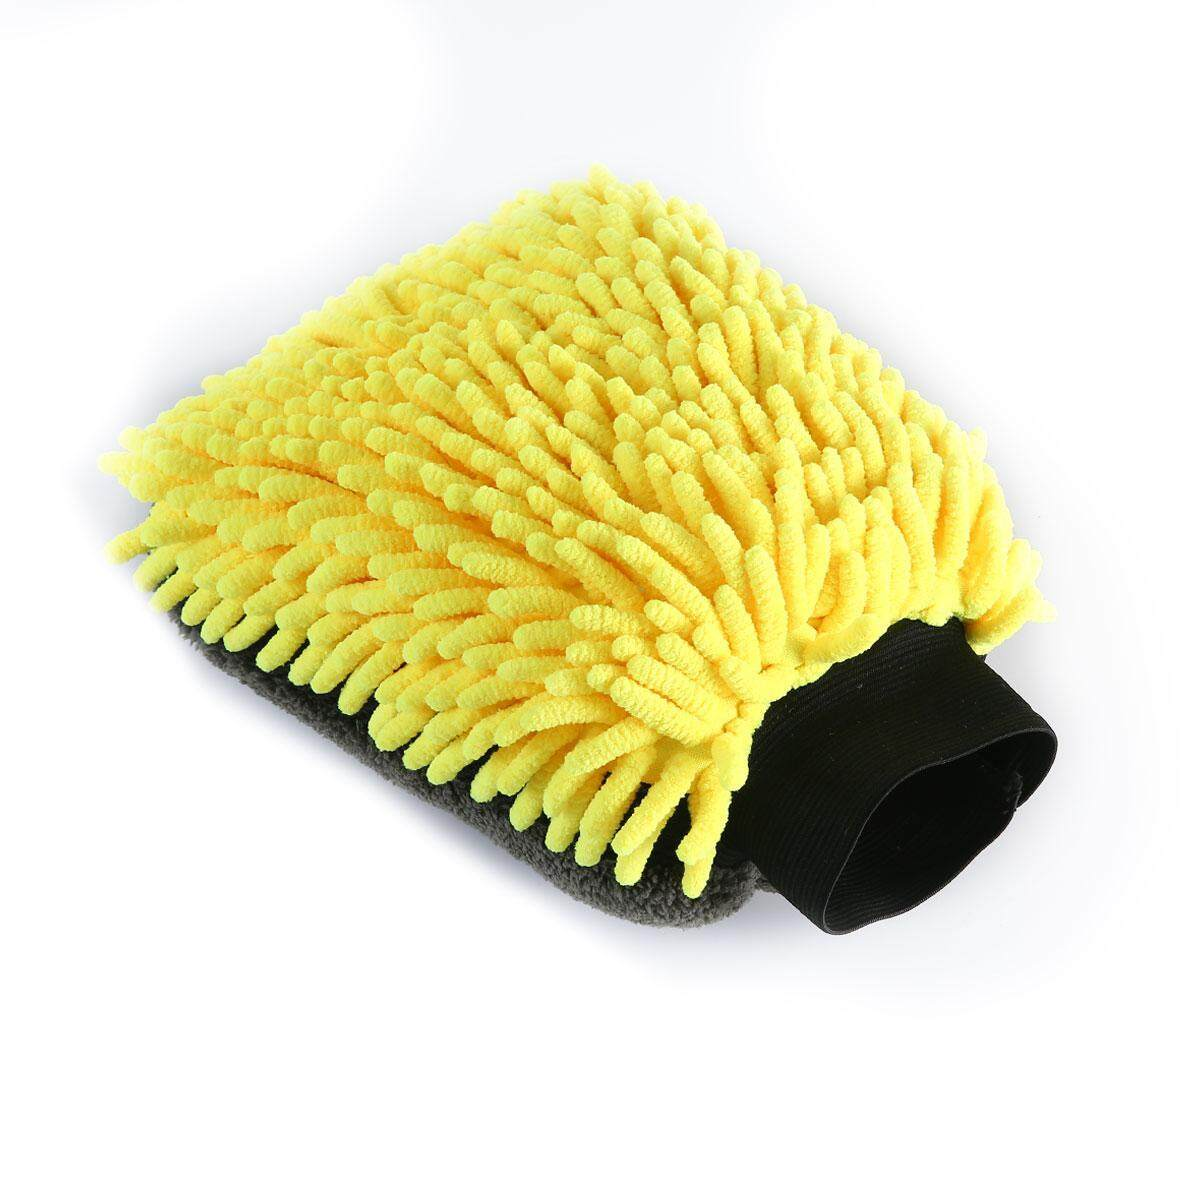 DS-Mart Microfiber Car Wash Gloves Car Wash Mitt Large Double-Sided Thickening Microfiber Chenille Car Wash Gloves, Ultra-soft Scratch Free Car Cleaning Mitts